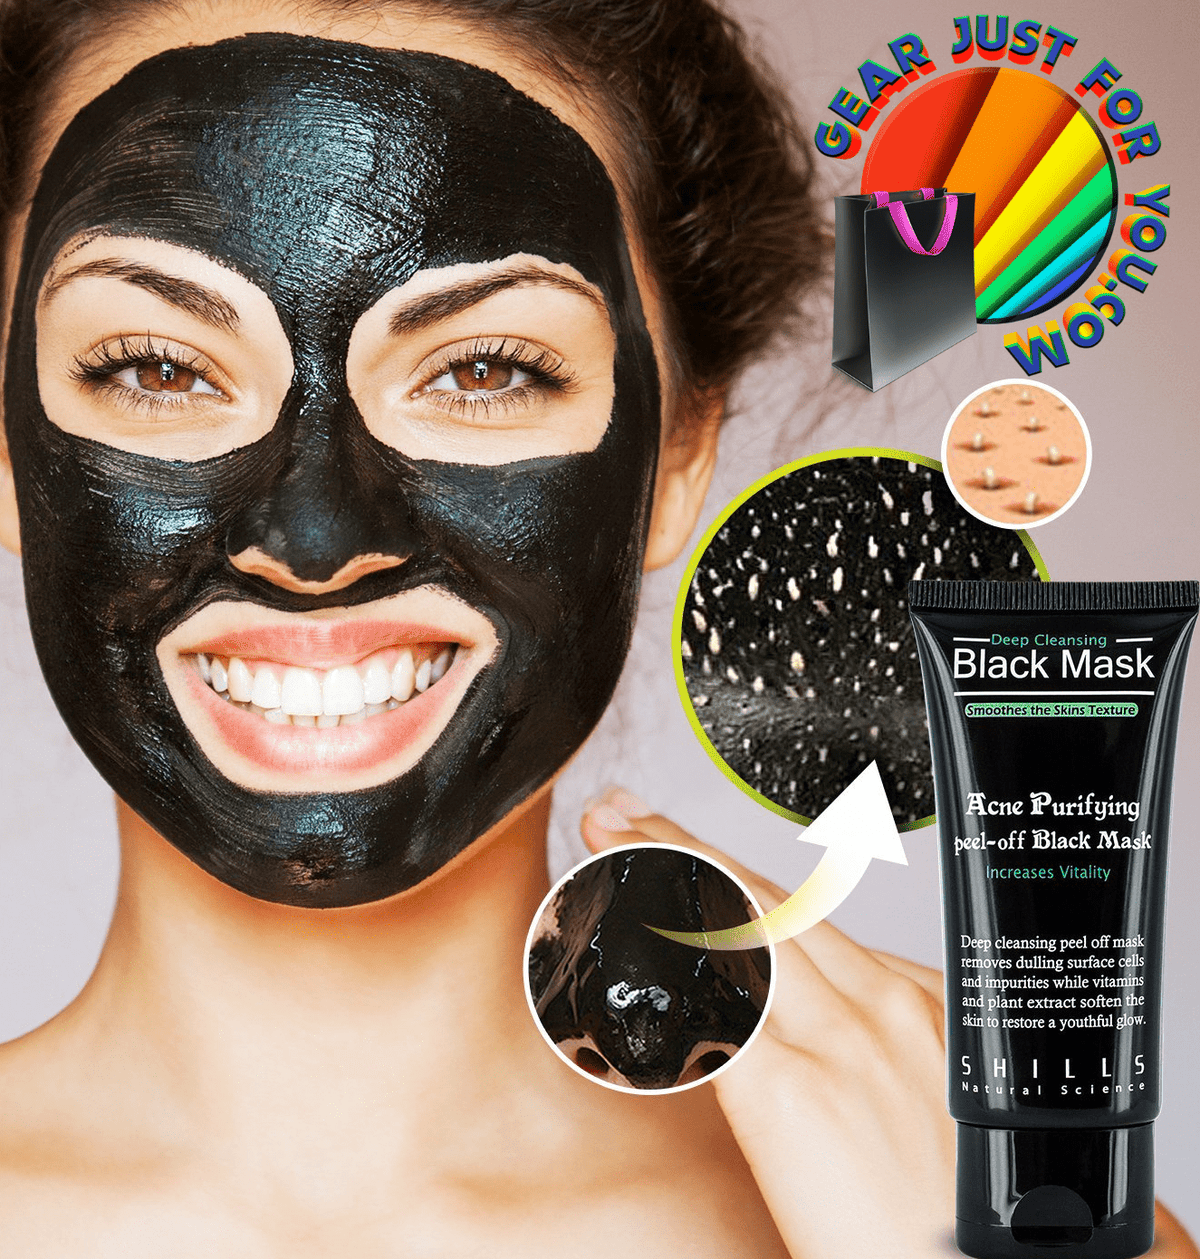 Amazing Blackhead Removal Deep Cleaning Face Mask It's ... - photo#35